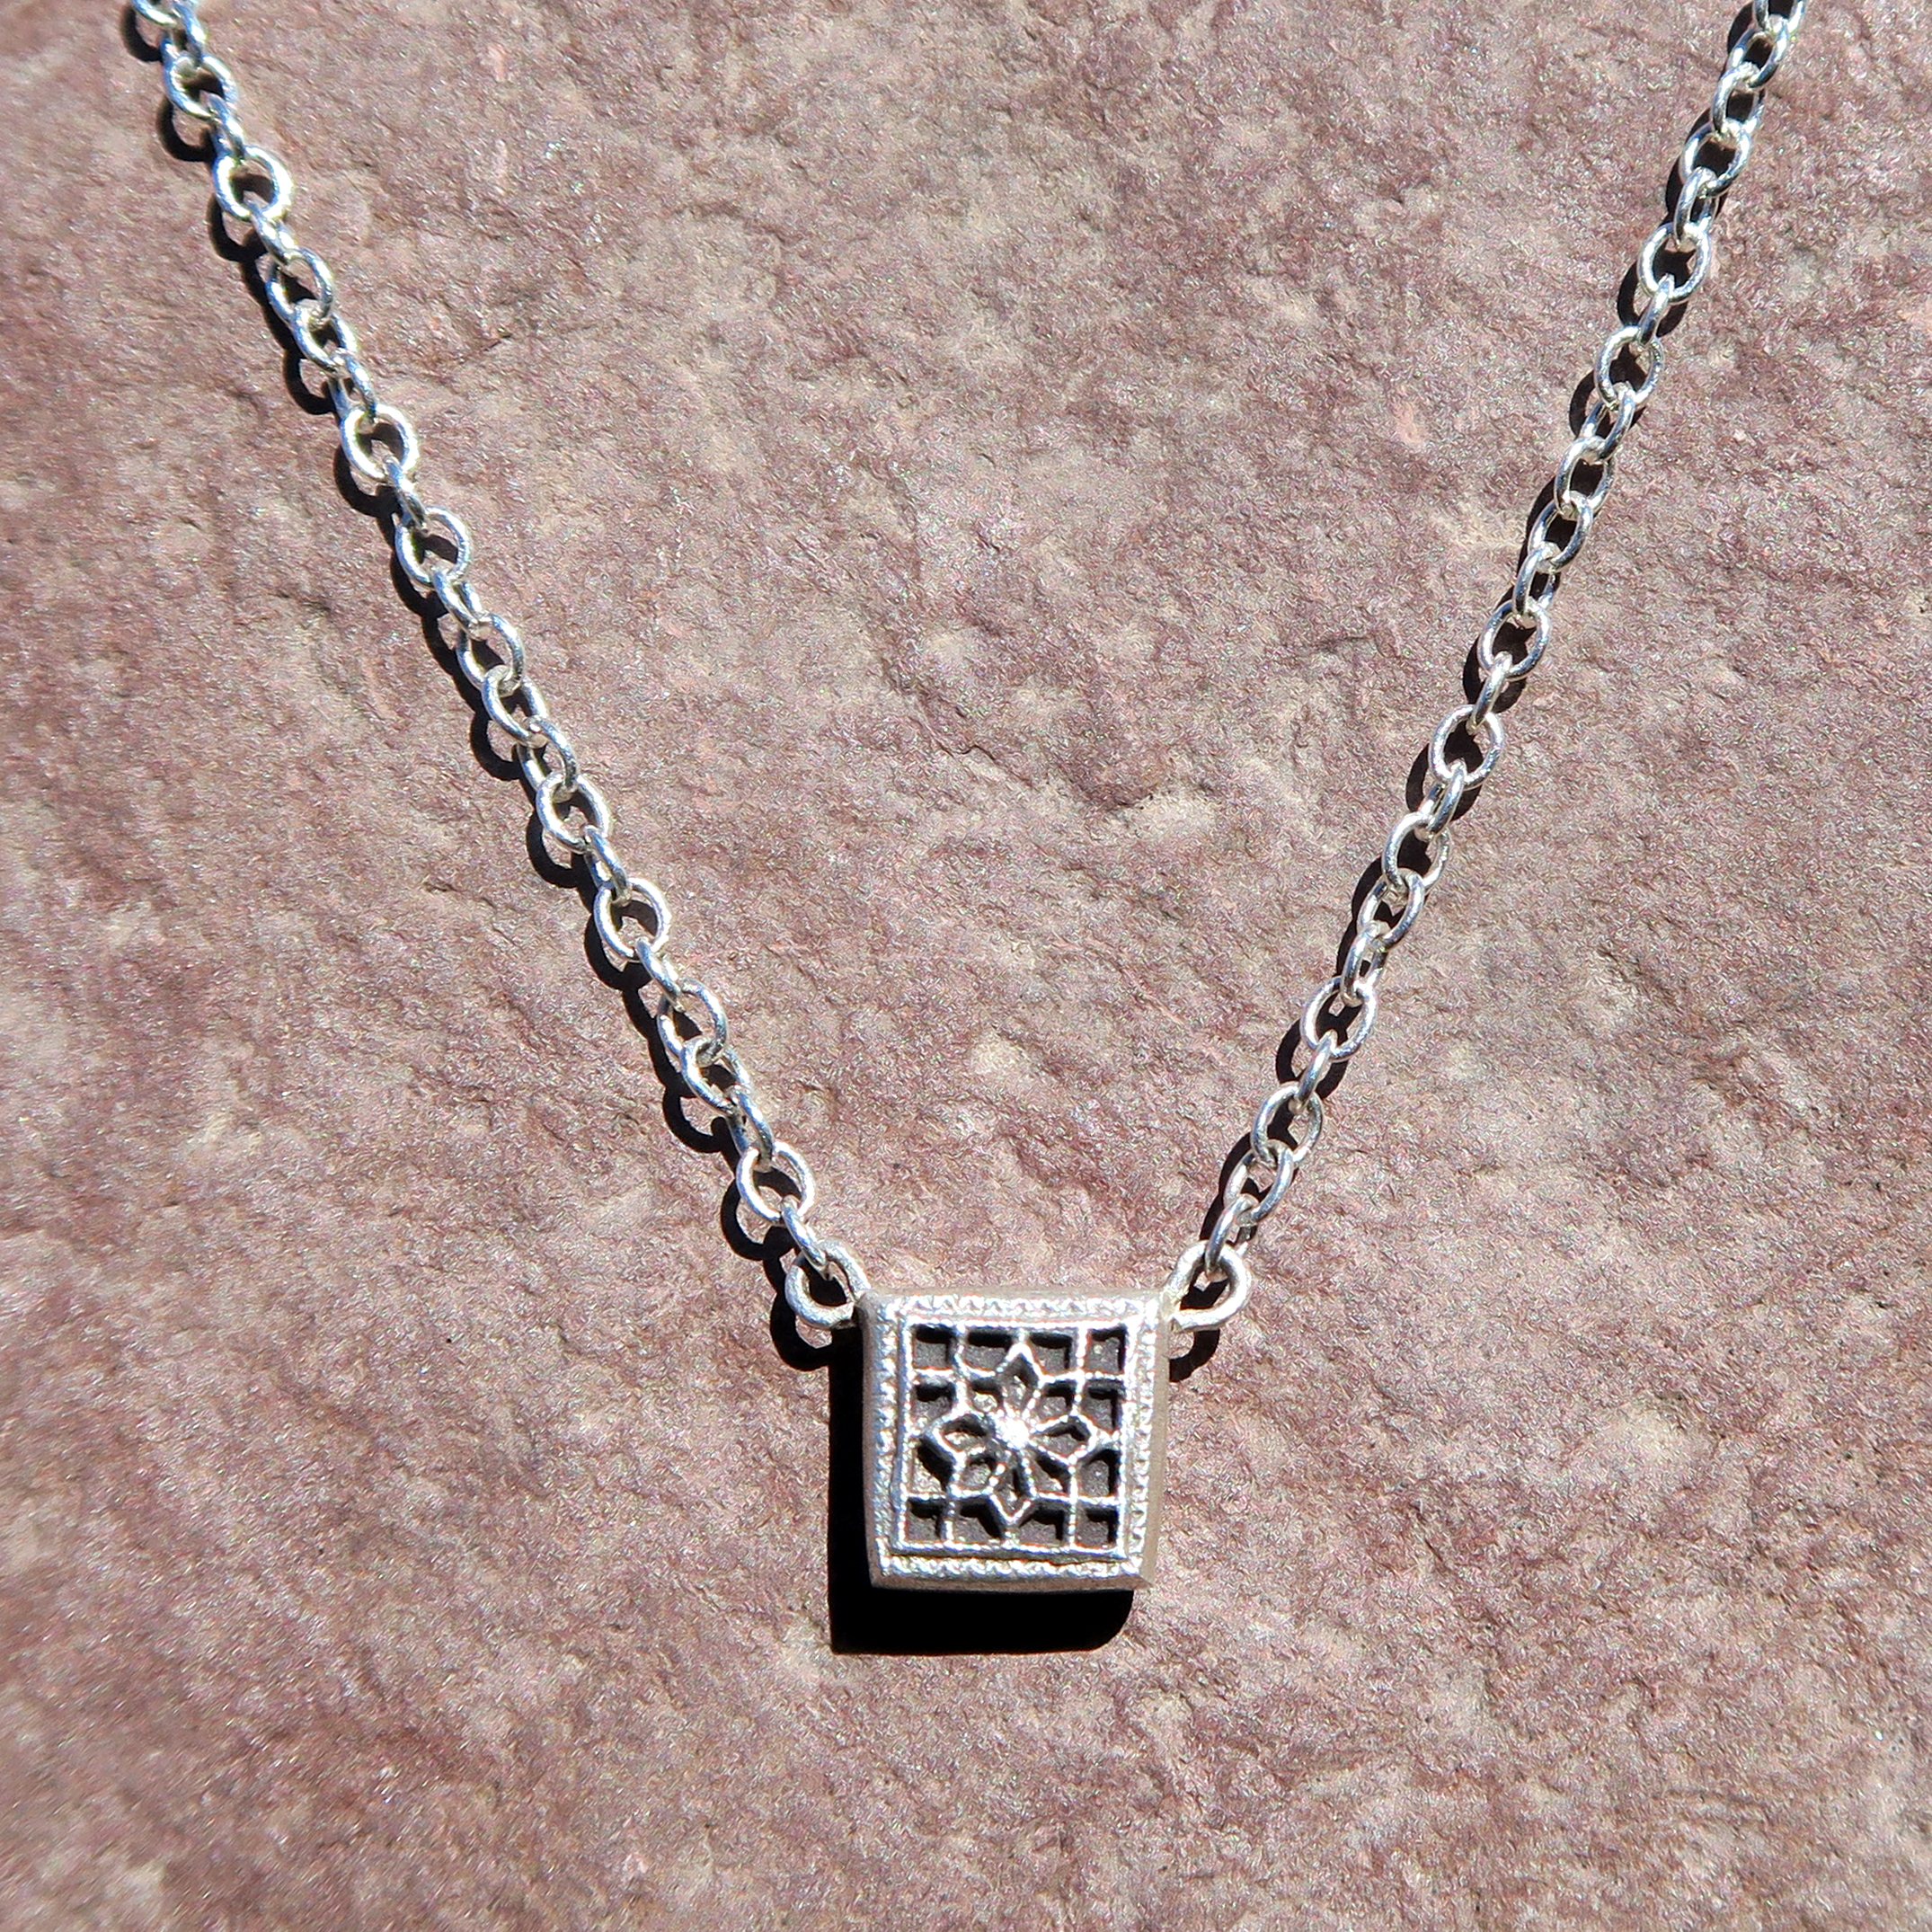 Victiorian Solitaire Necklace